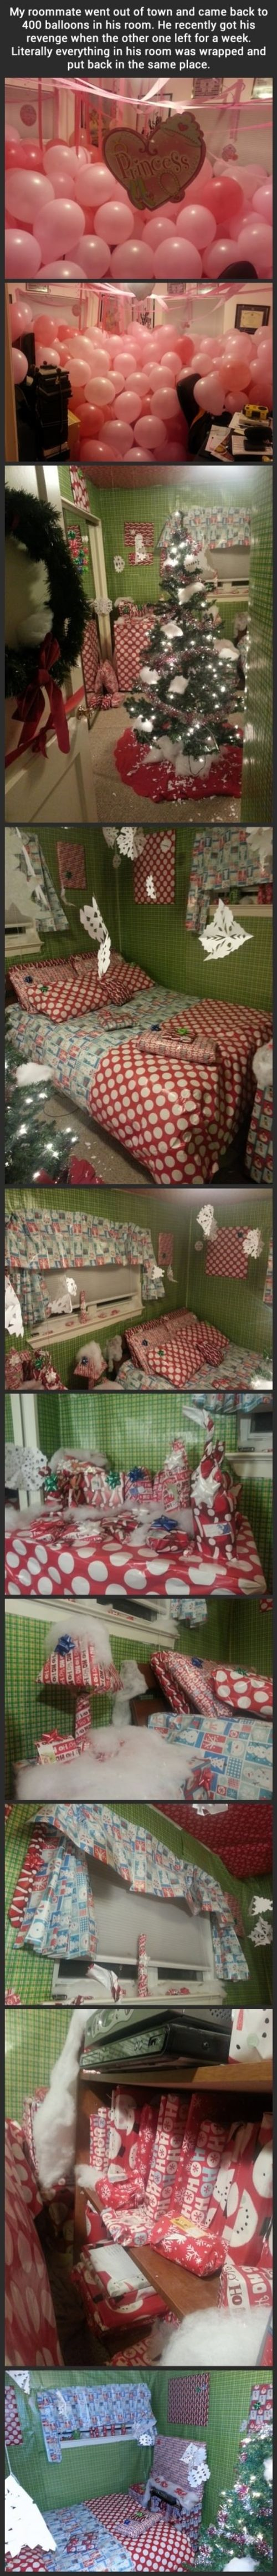 roommate revenge   The only problem I have with this is that NO man can wrap things that well  He had help